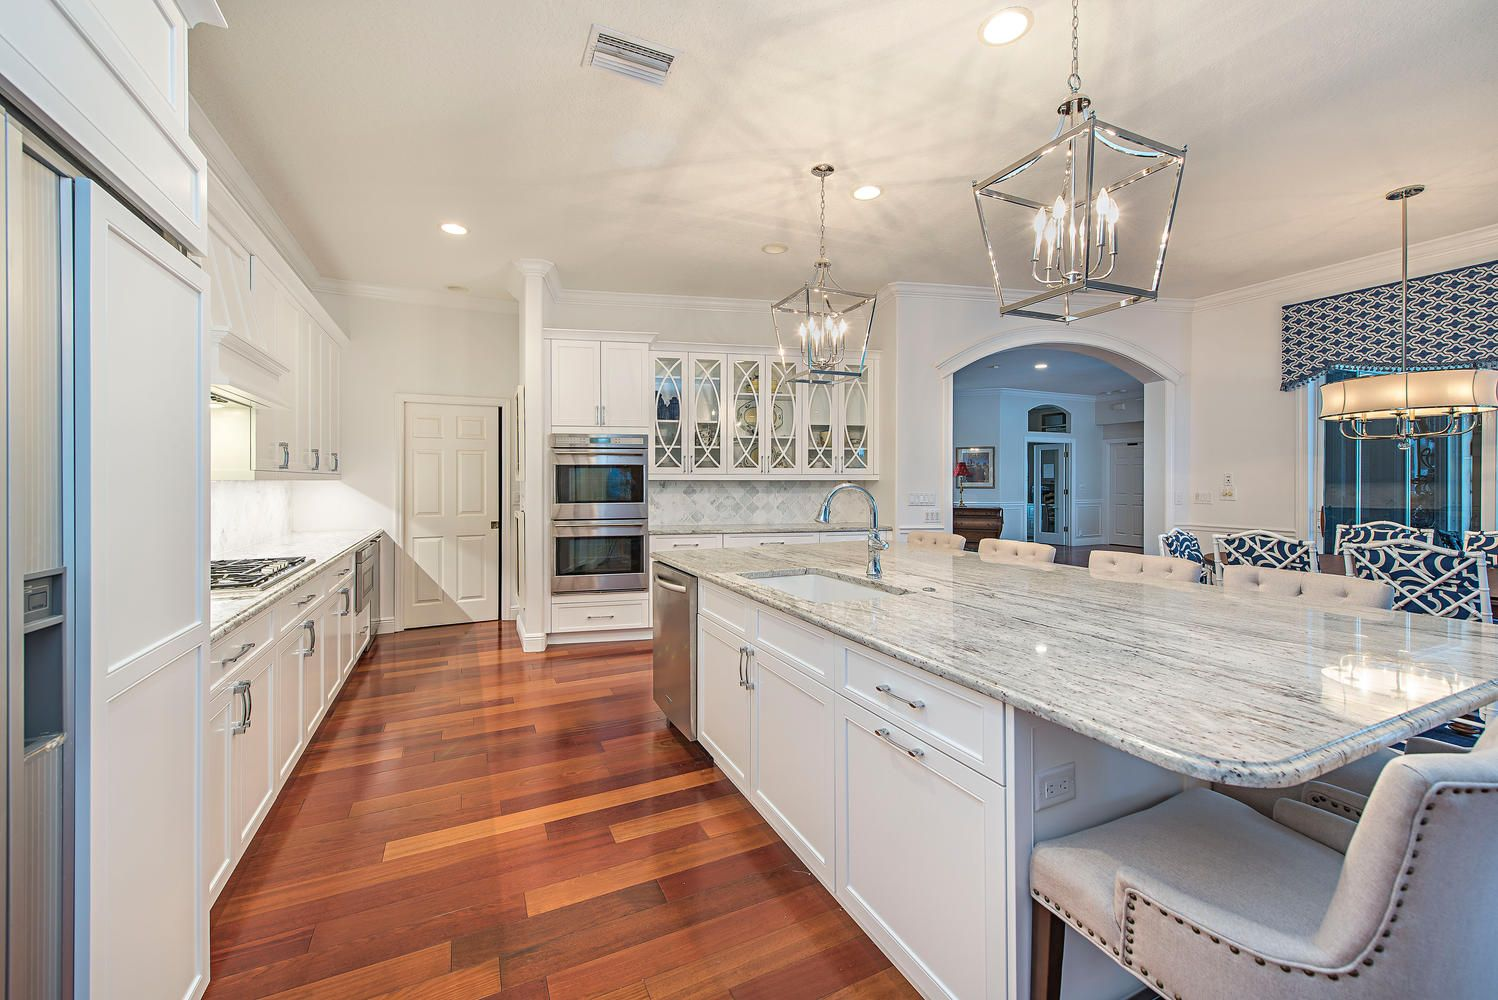 Perfect Gorgeous Kitchen Remodel, Modern White Kitchen Remodeling In Naples Florida  Http://www.reeddesignbuild.com/remodeling Services In Naples Florida/